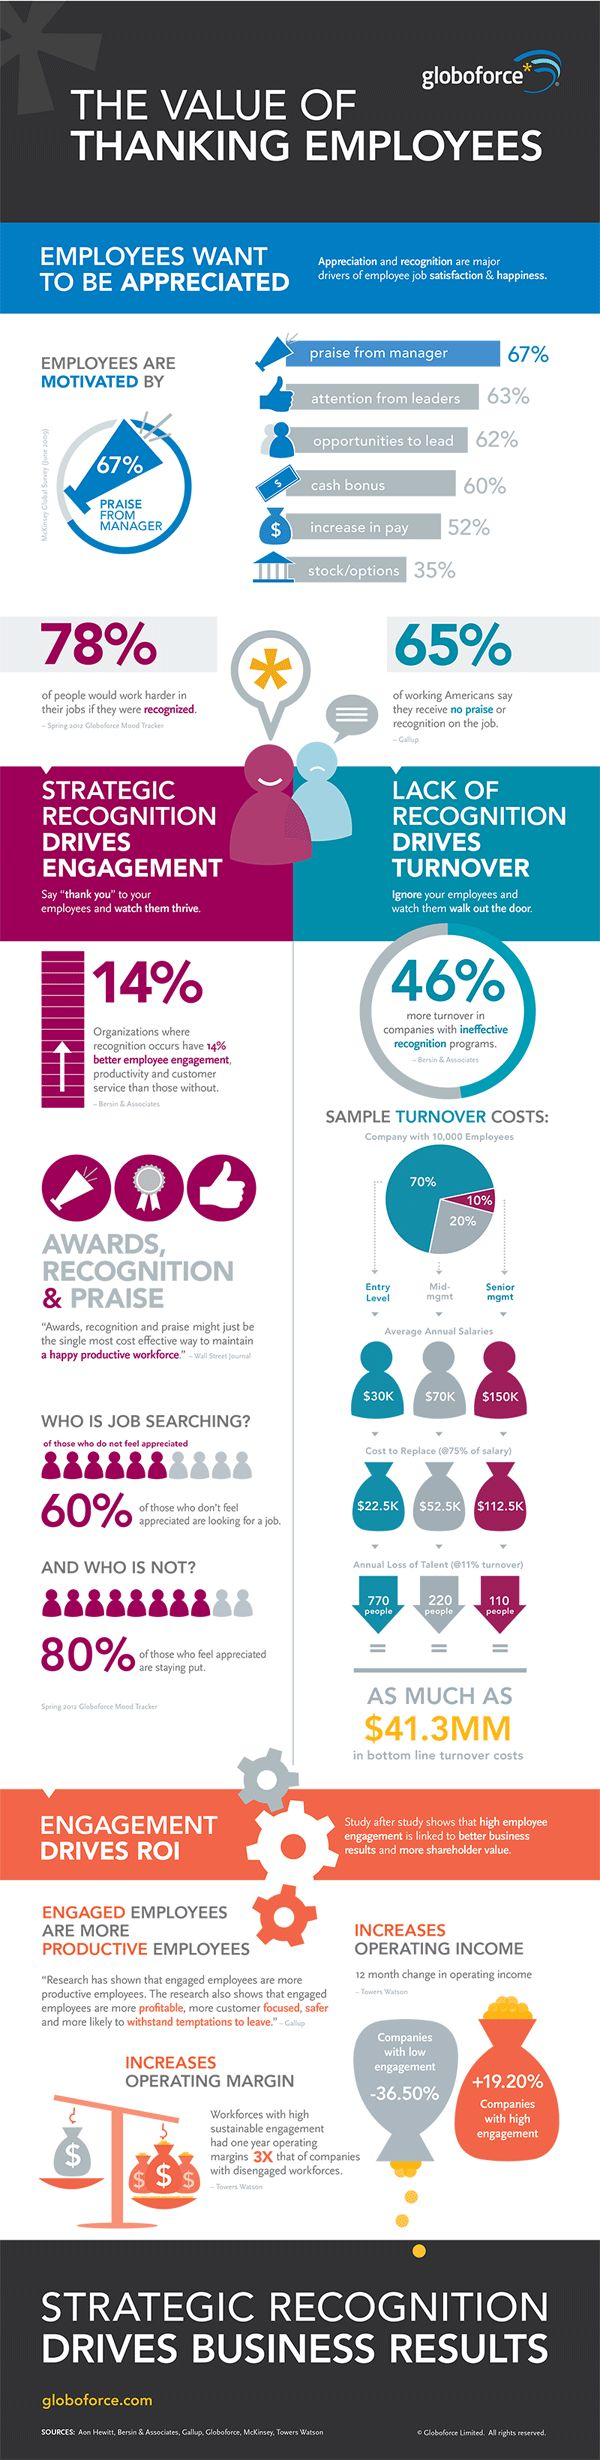 Value of Thanking Your #Employees #infographic #leadership